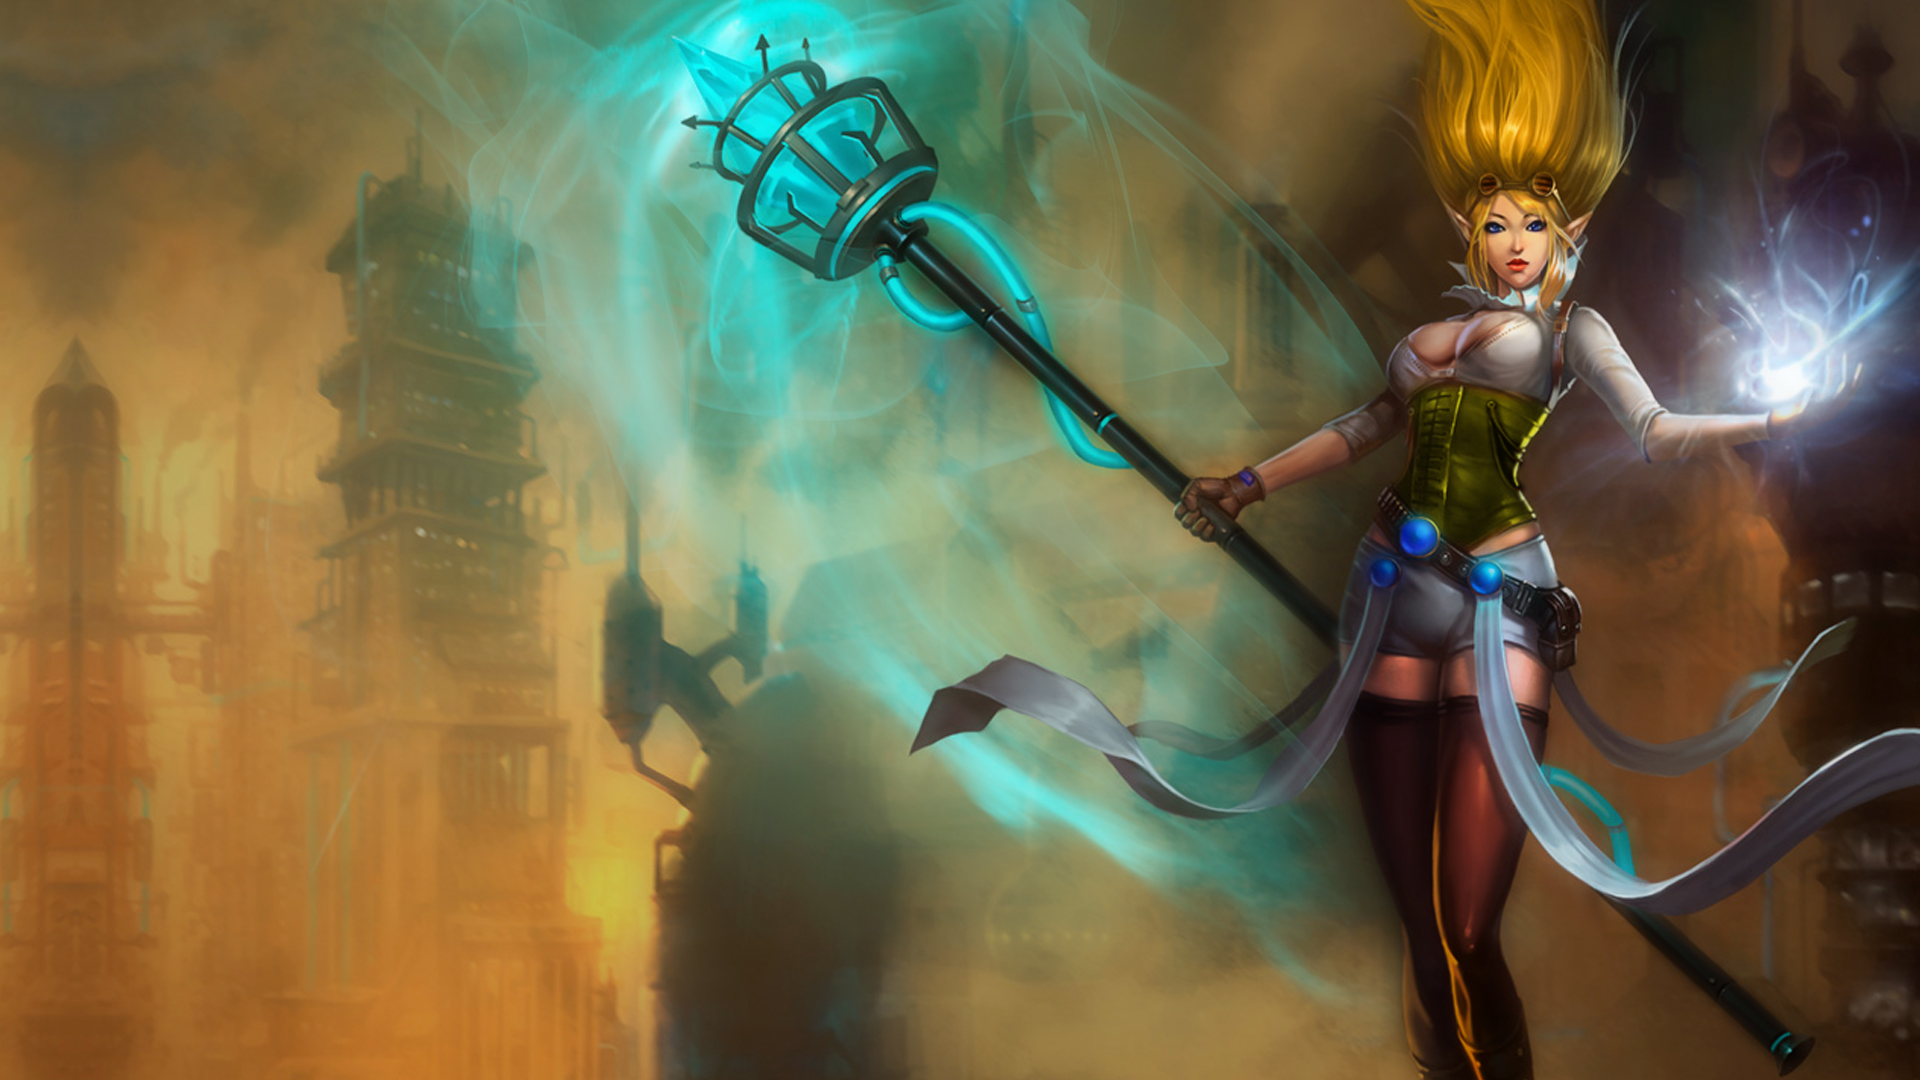 janna_wallpaper_by_nighthunte-d3exq2l